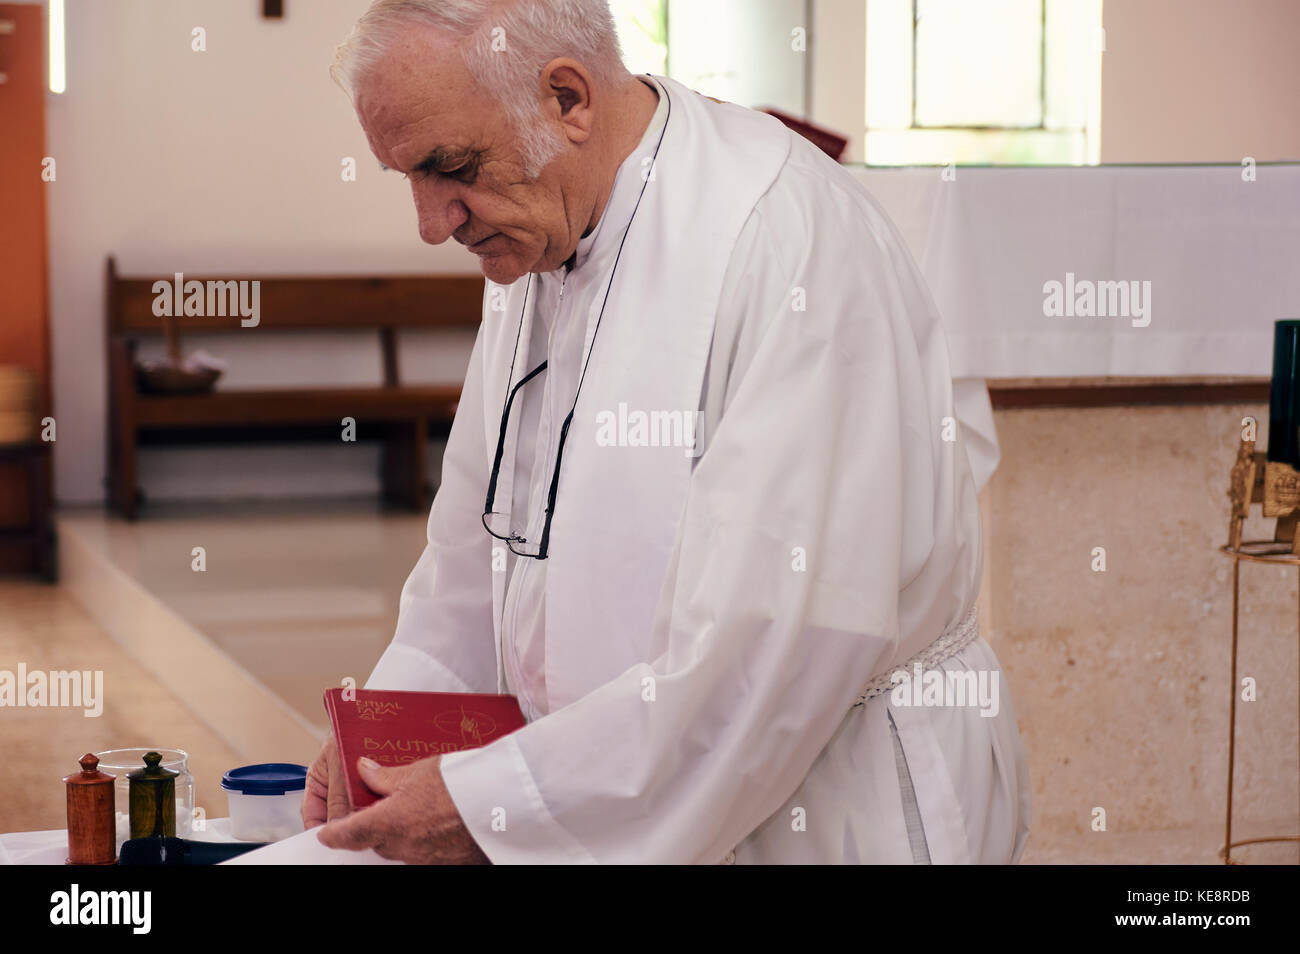 Baby baptism catholic church ceremony - Stock Image